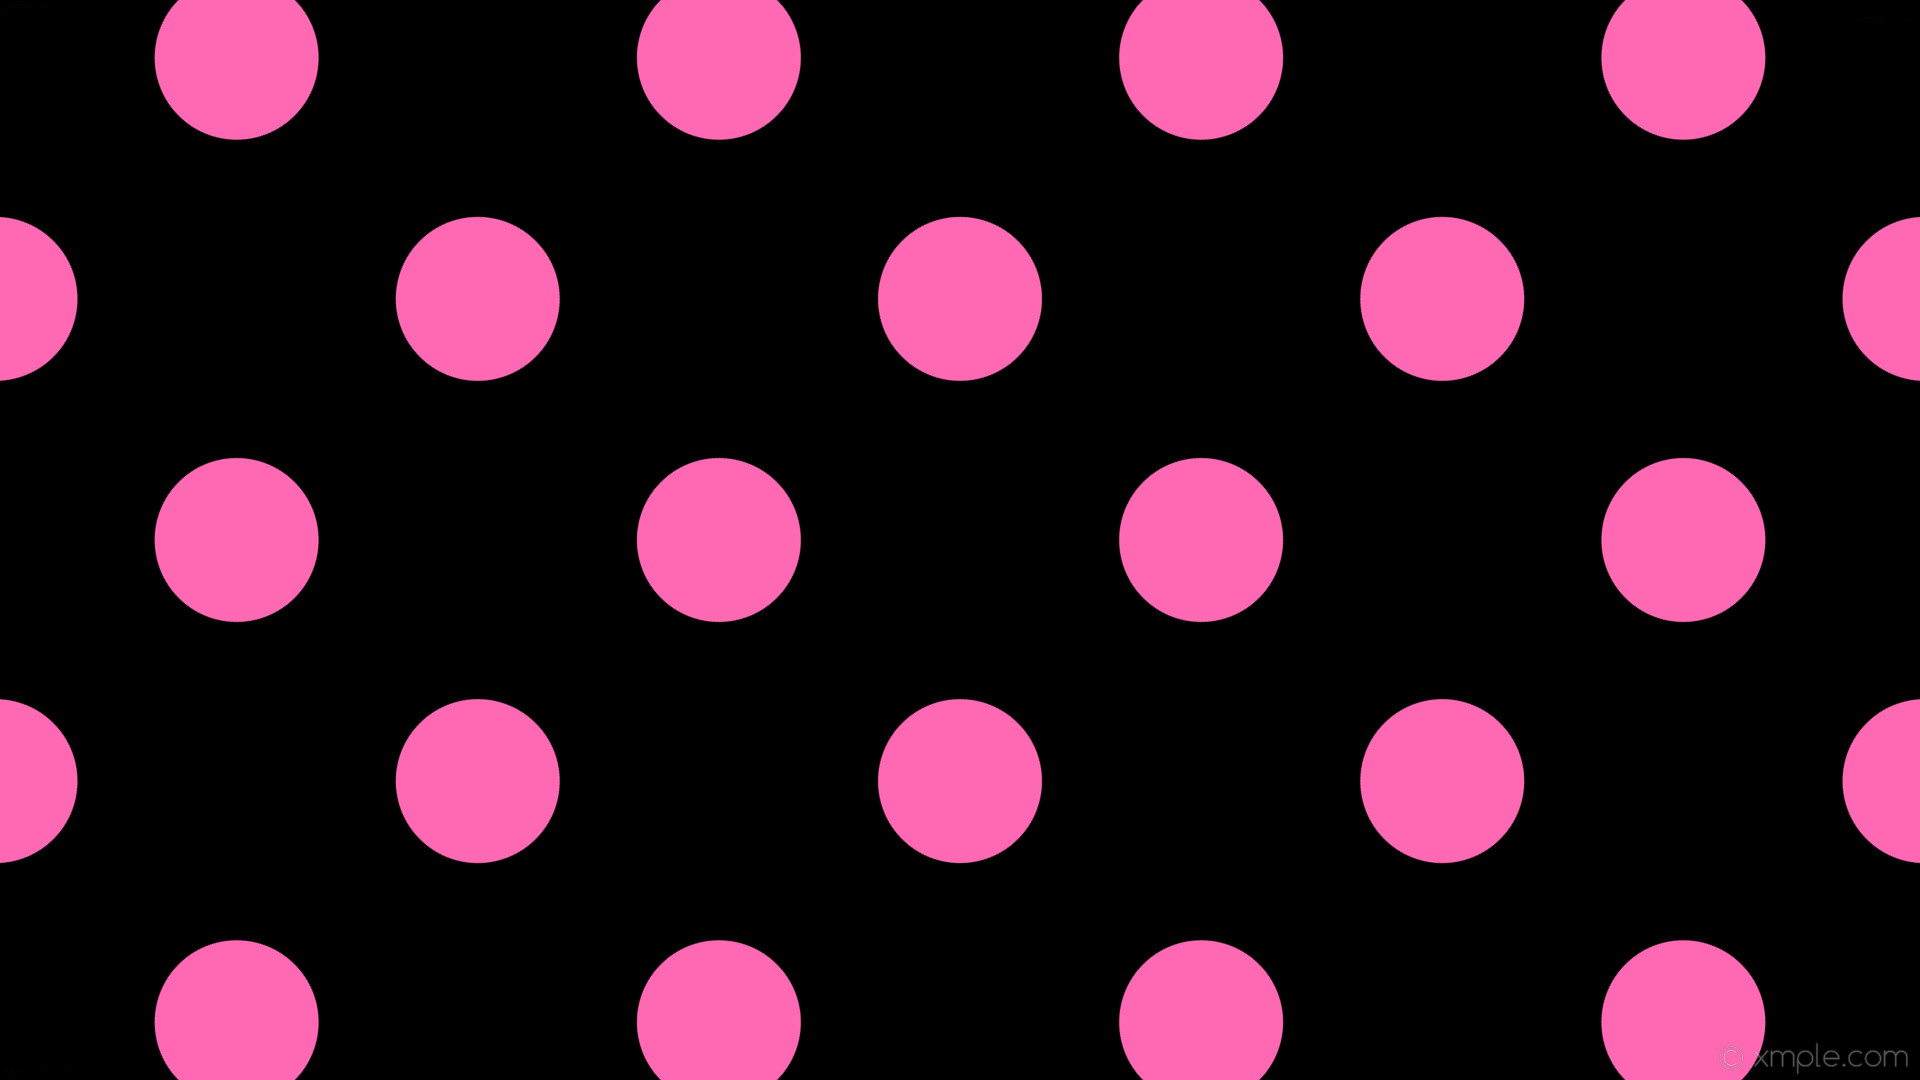 Hot pink and black heart backgrounds